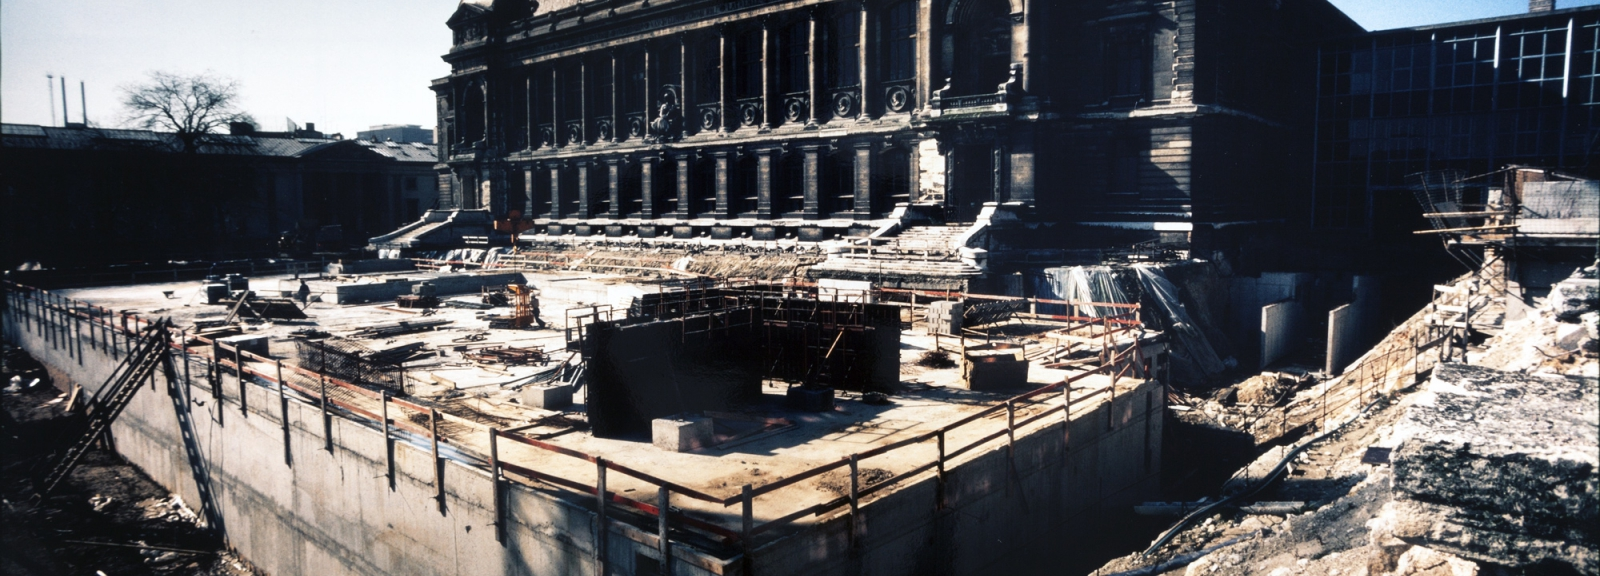 Construction of the zoothèque in 1981 © MNHN - Bernard Faye